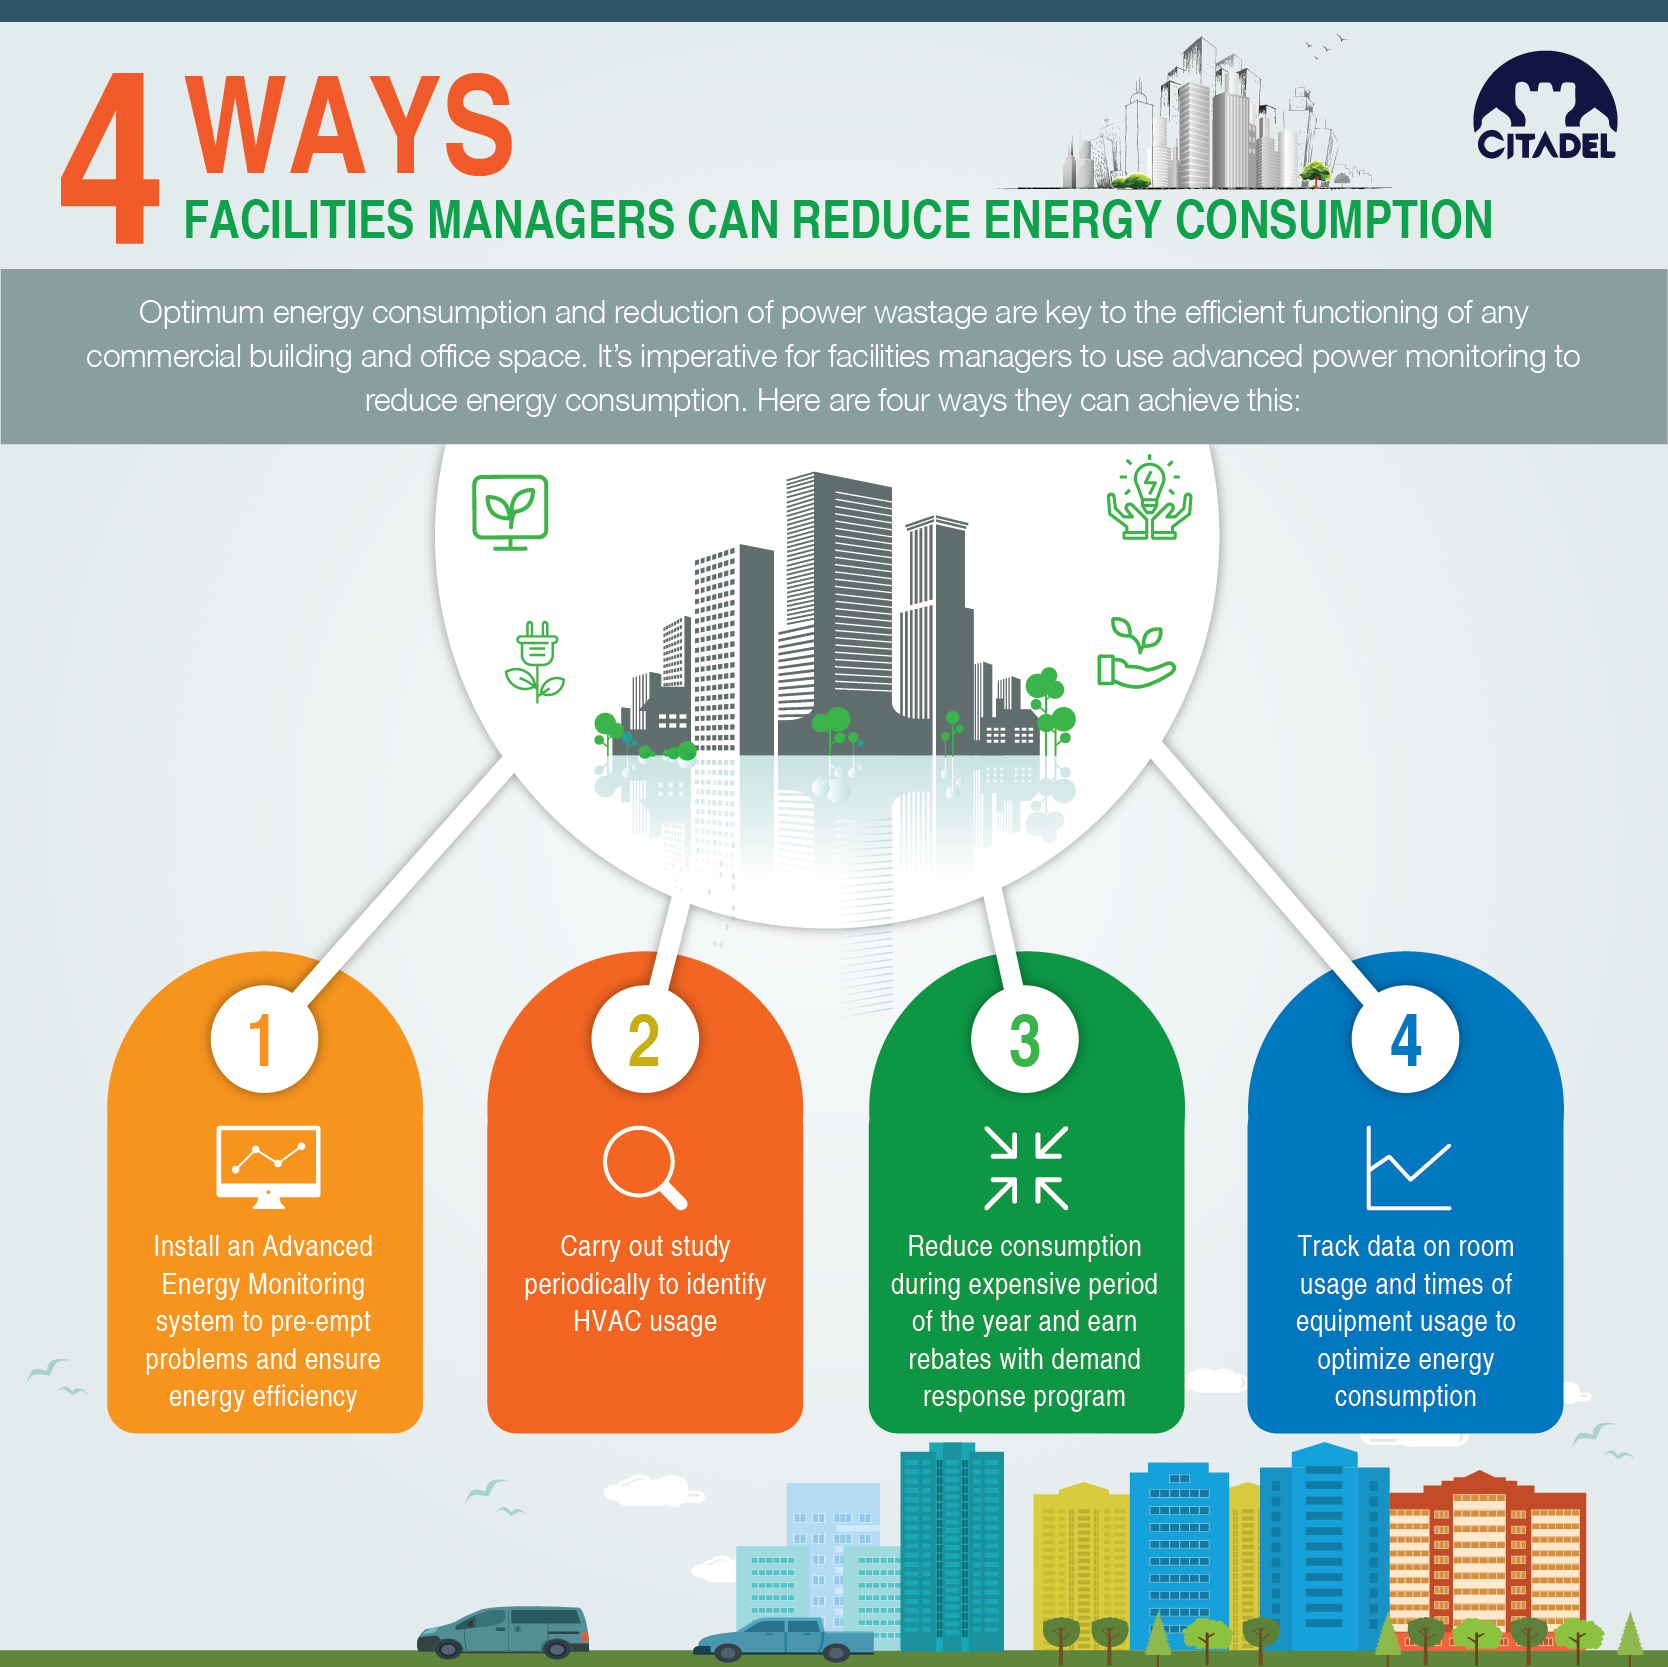 4 WAYS FACILITIES MANAGERS CAN REDUCE ENERGY CONSUMPTION